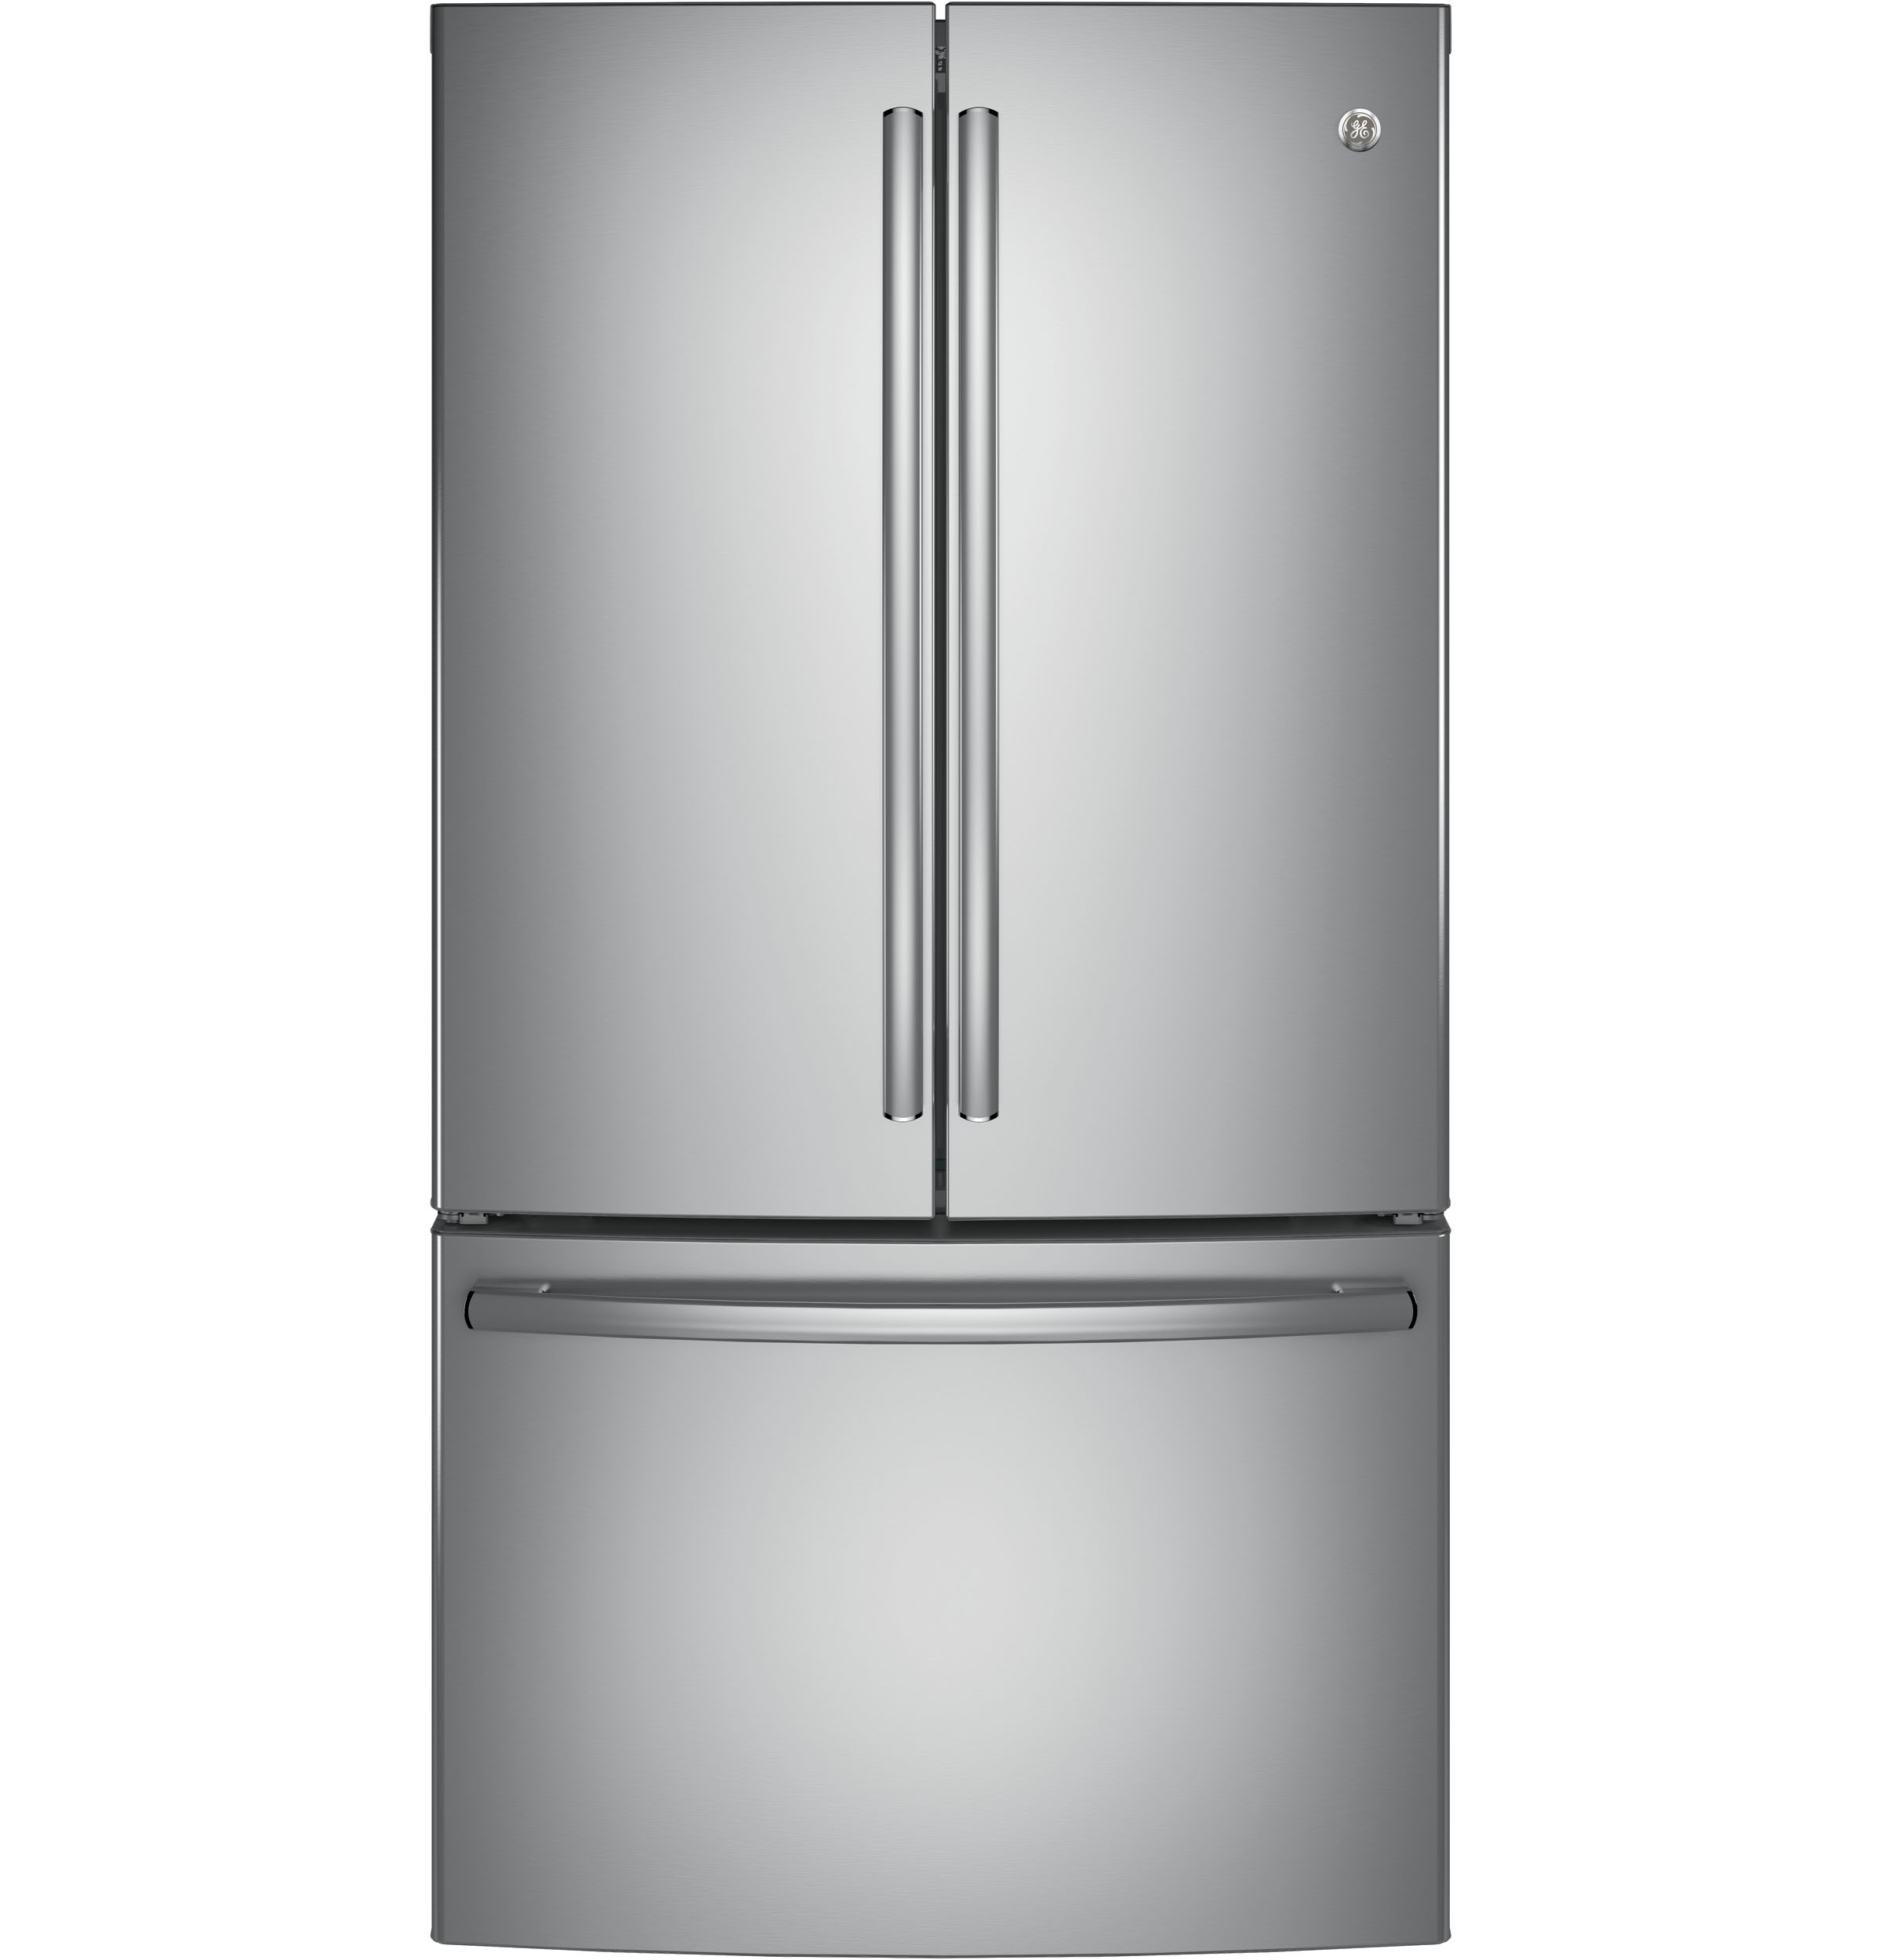 GE GE® ENERGY STAR® 28.7 Cu. Ft. French-Door Refrigerator